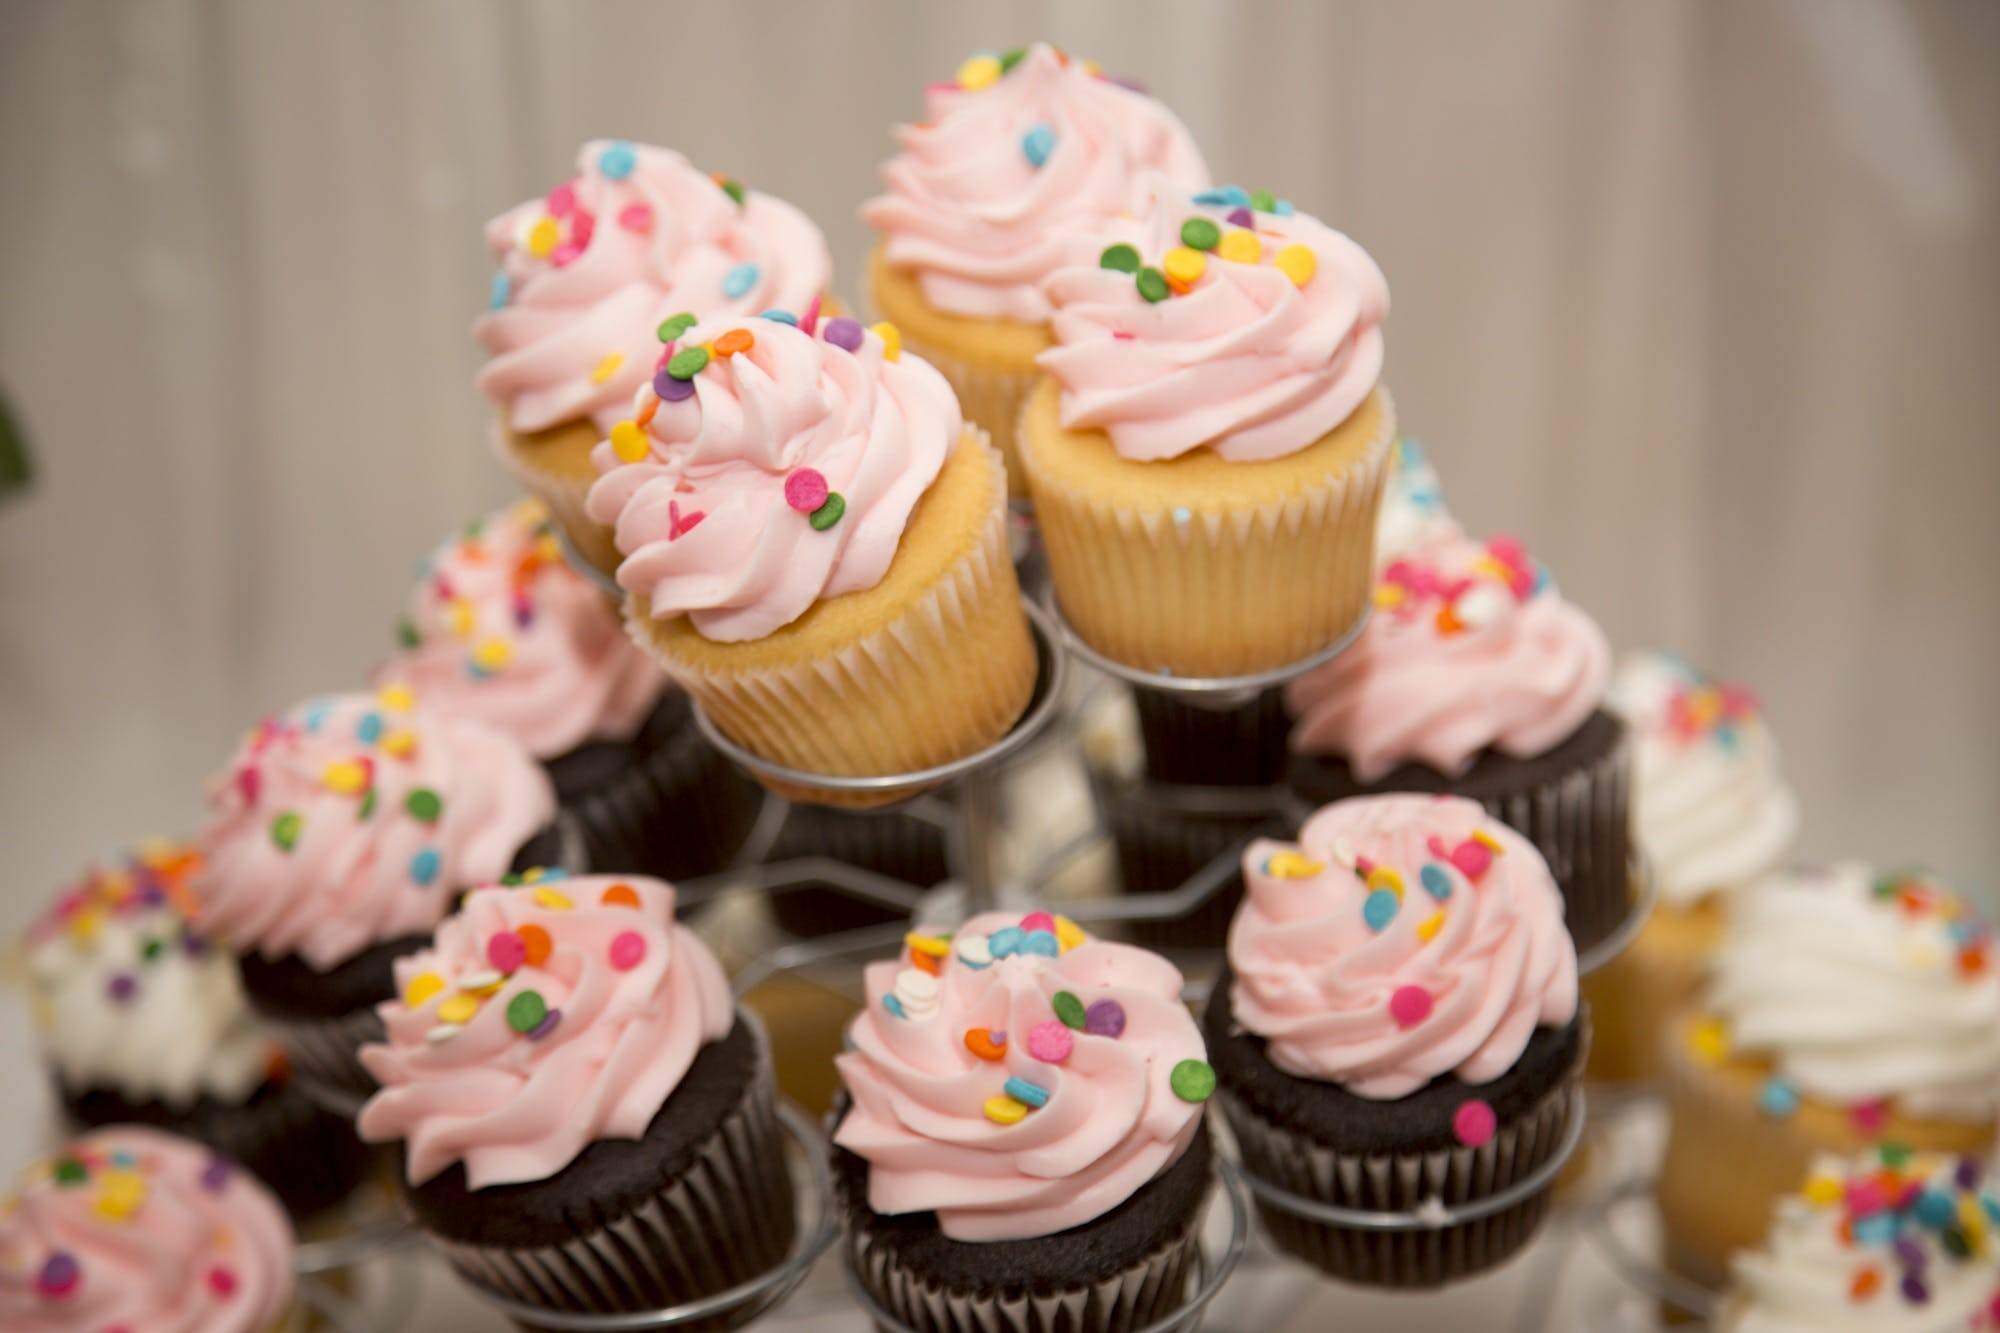 Free stock photo of food, party, sugar, bakery